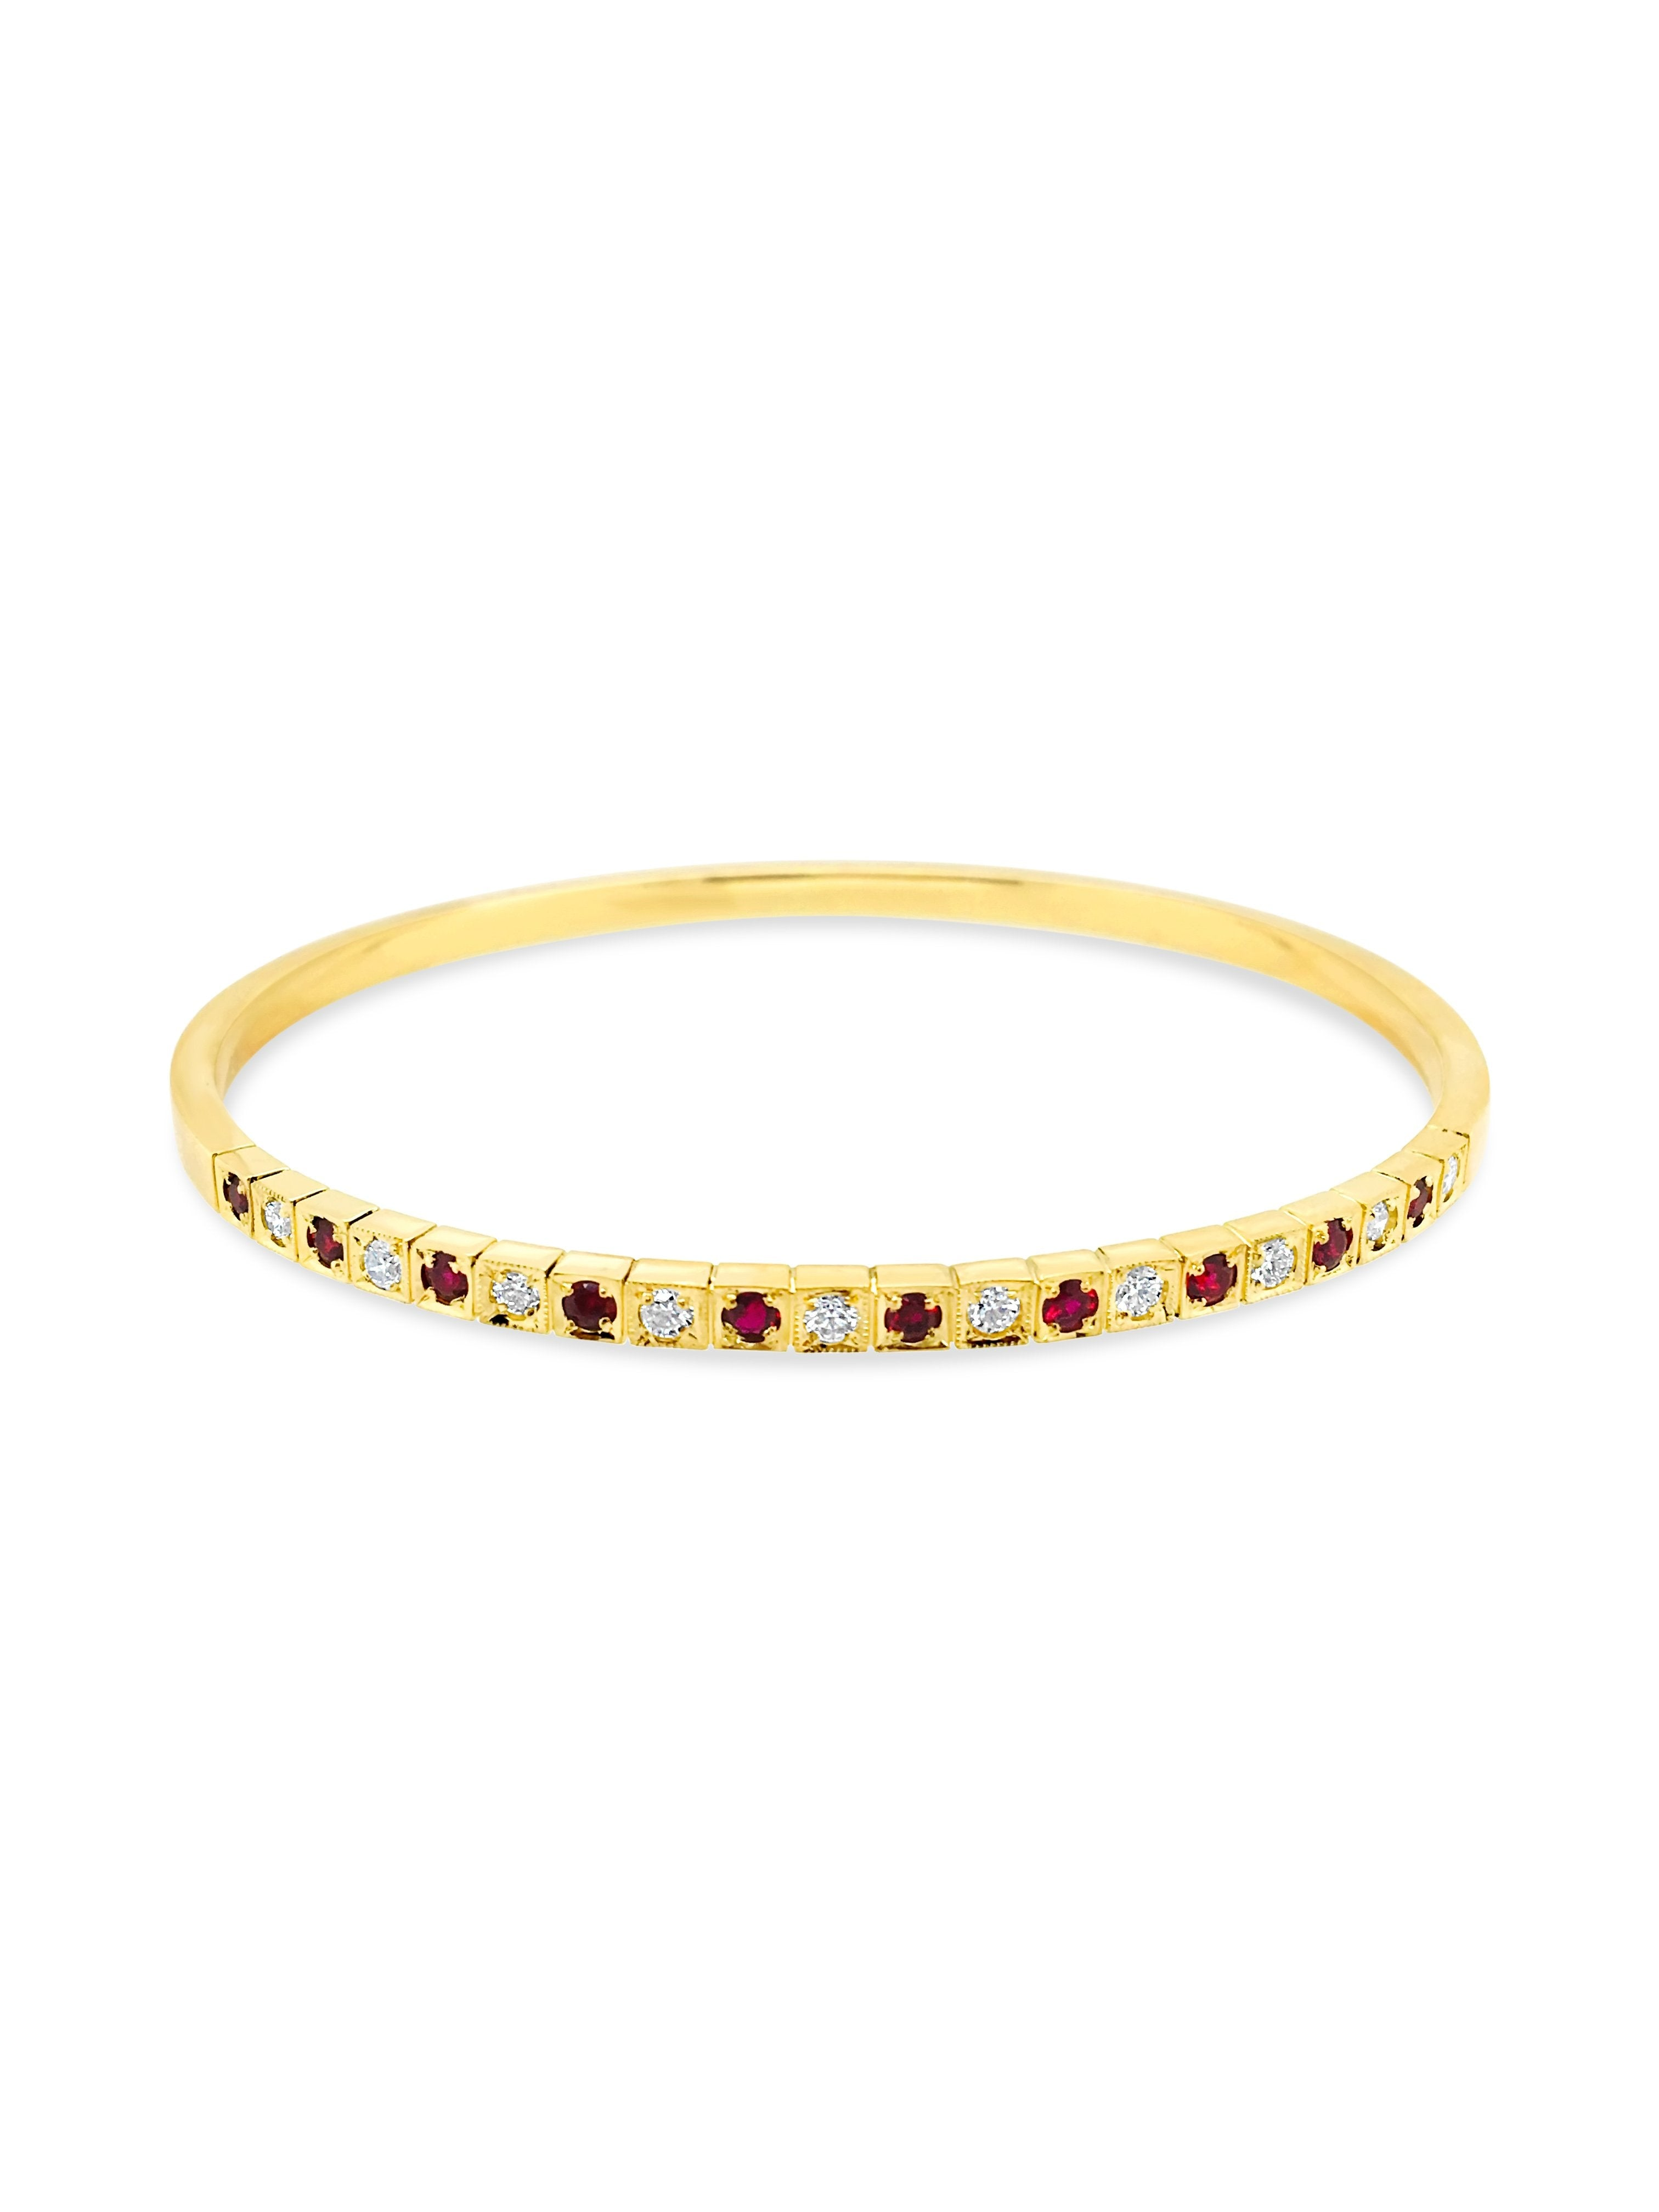 Ruby and Diamond Solid Gold Bangle